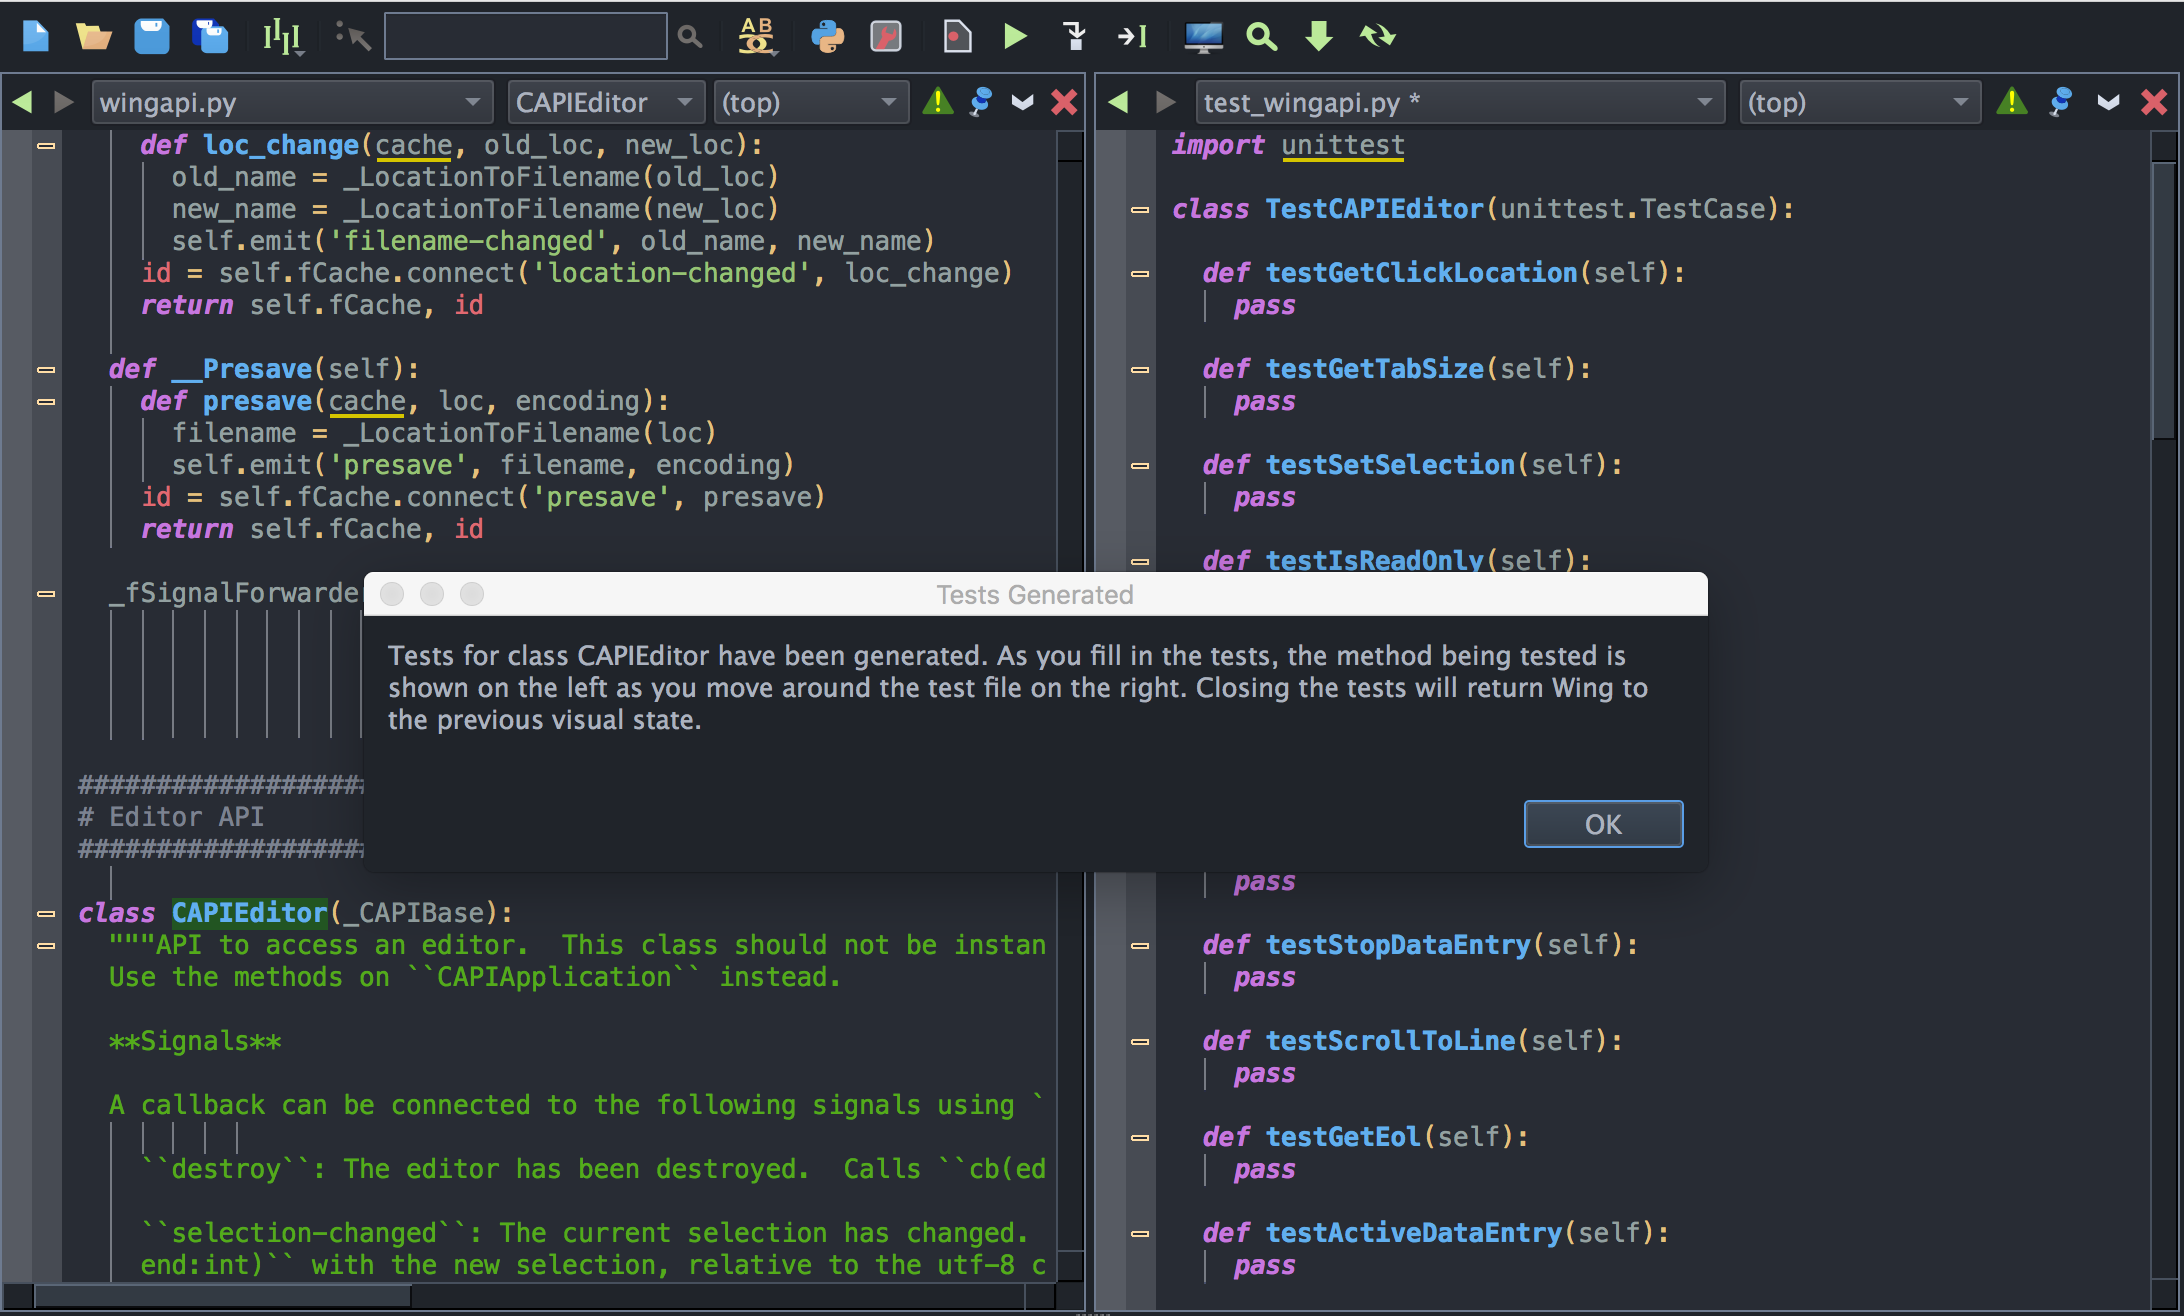 /images/blog/scripting-4/side-by-side.png